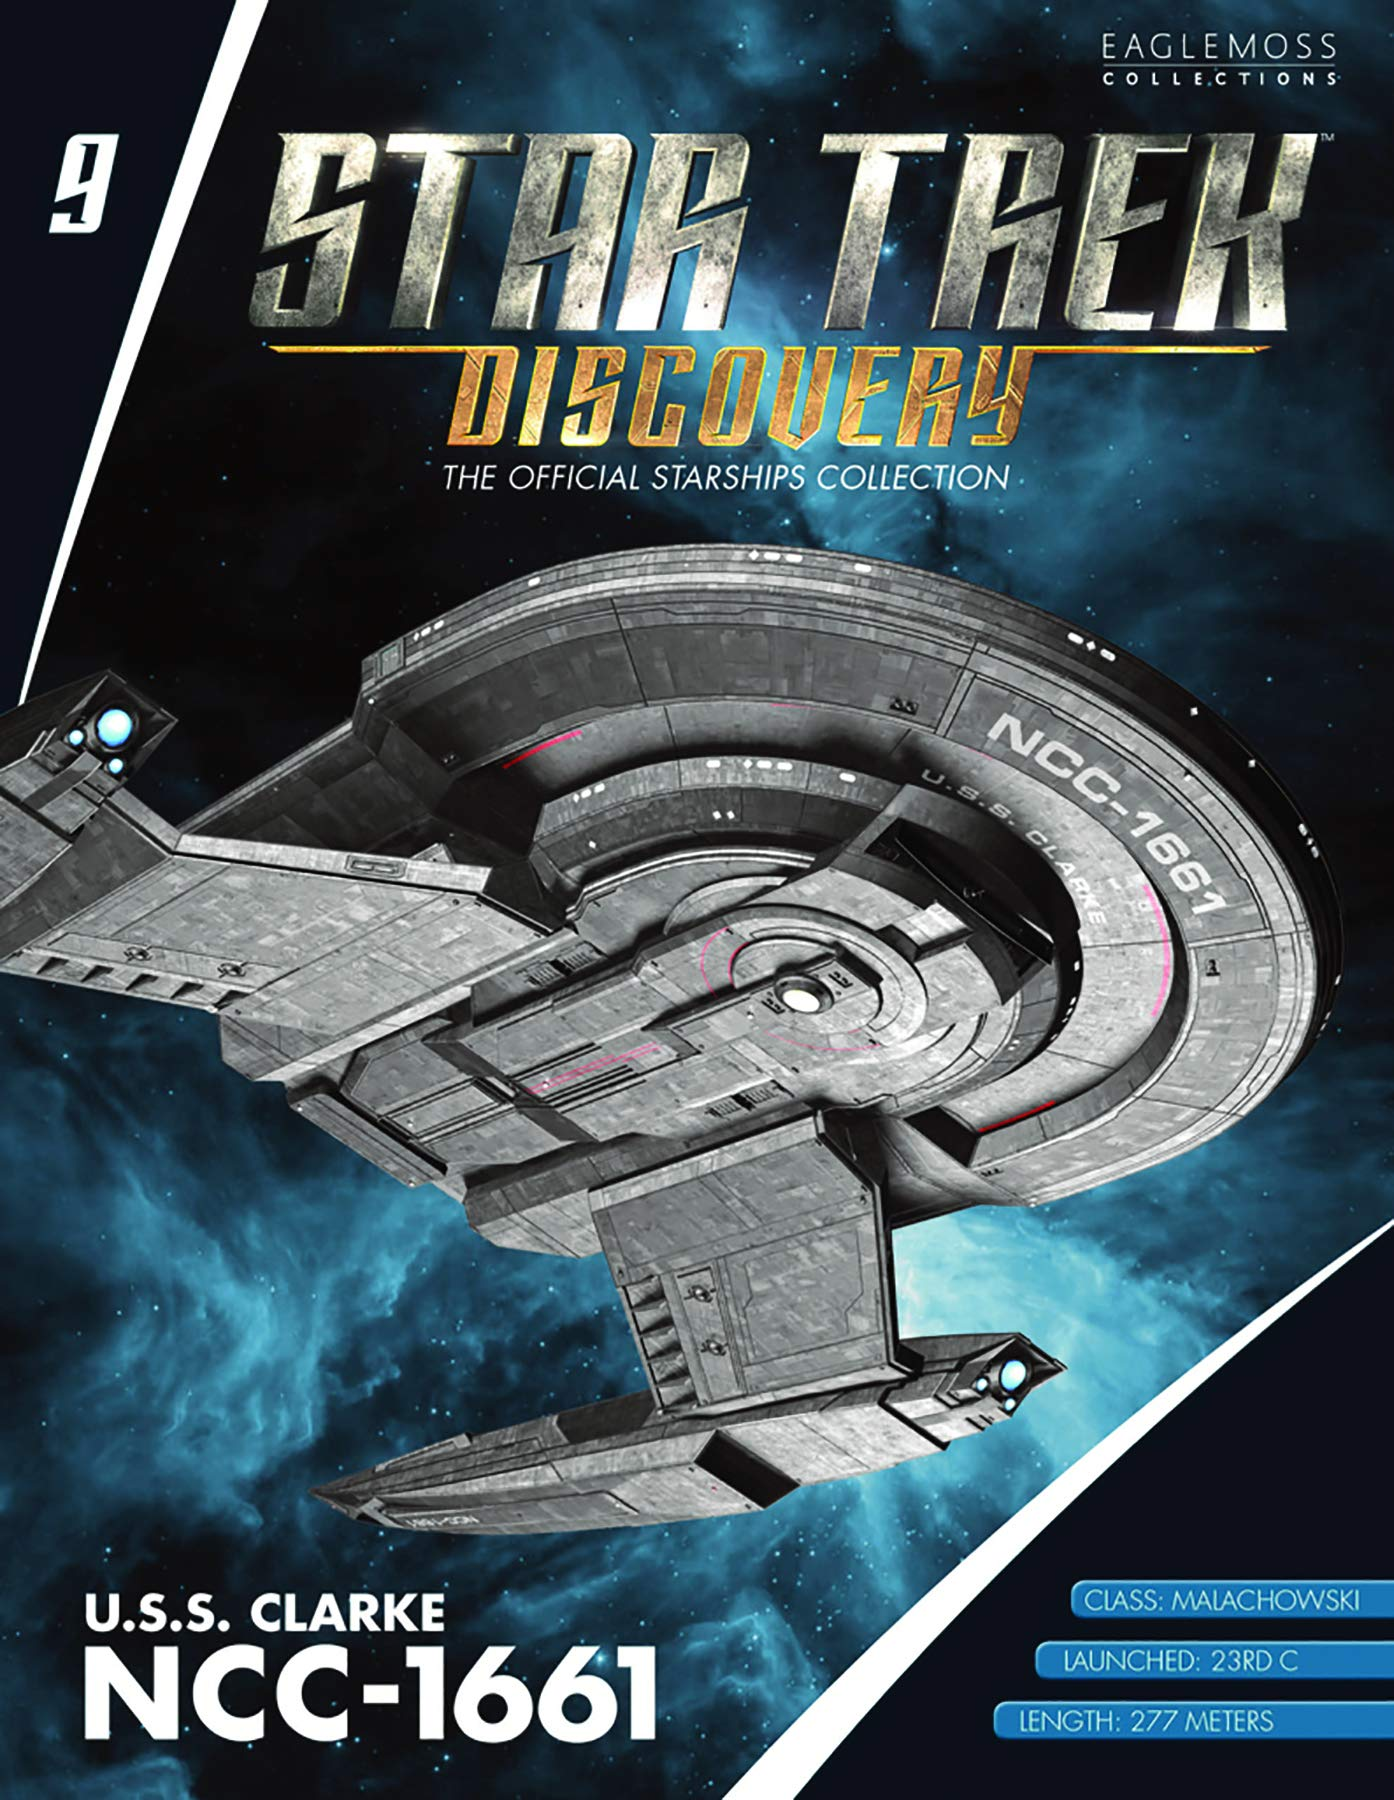 Star Trek Discovery The Official Starships Collection #9: U.S.S. Clarke NCC-1661 Ship Replica